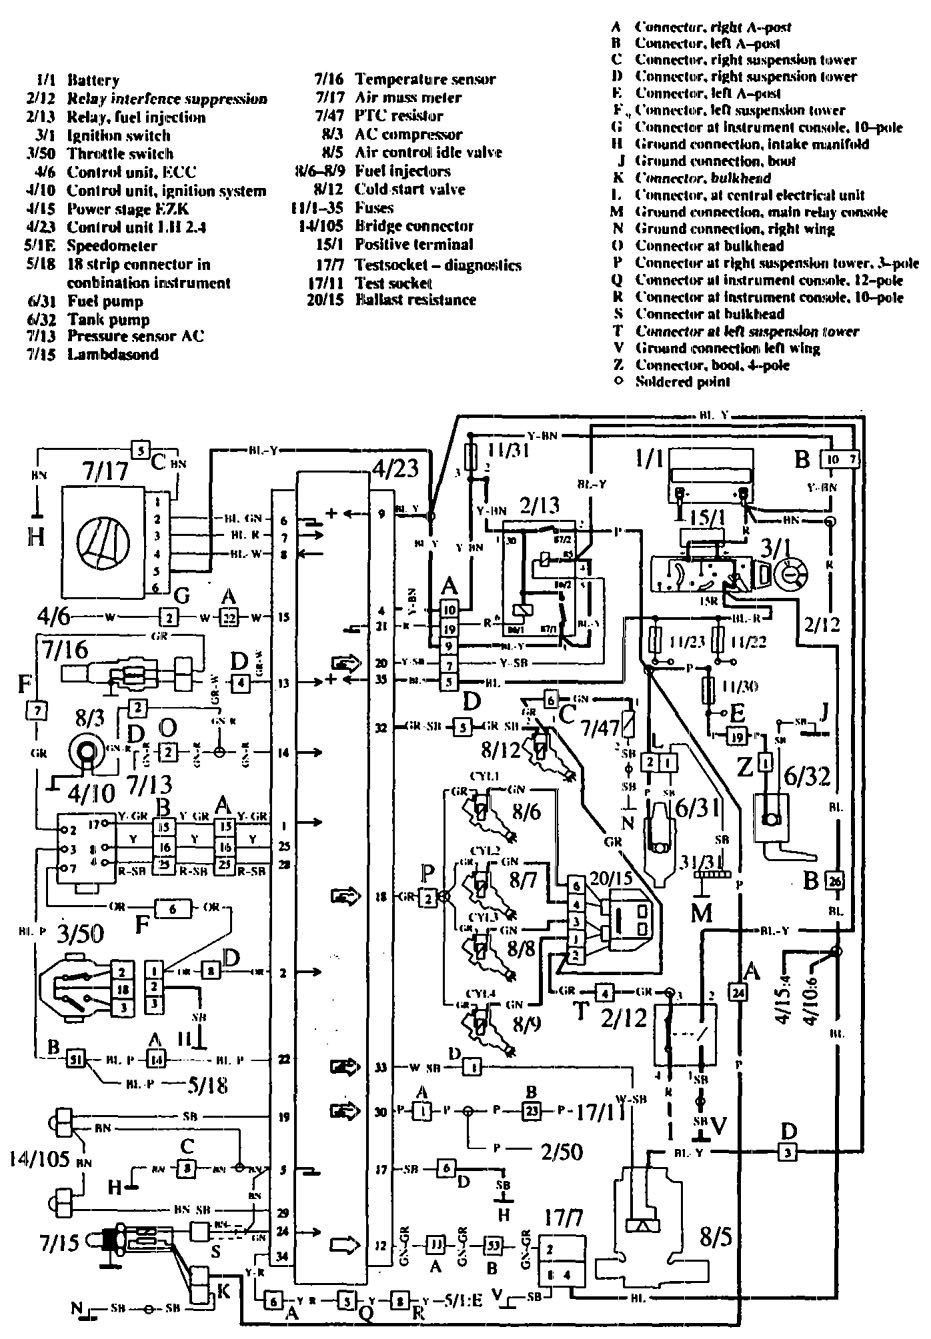 volvo 760 wiring diagram fuel controls 1990 volvo 760 wiring diagram wiring diagram simonand Volvo Semi Truck Wiring Diagram at fashall.co